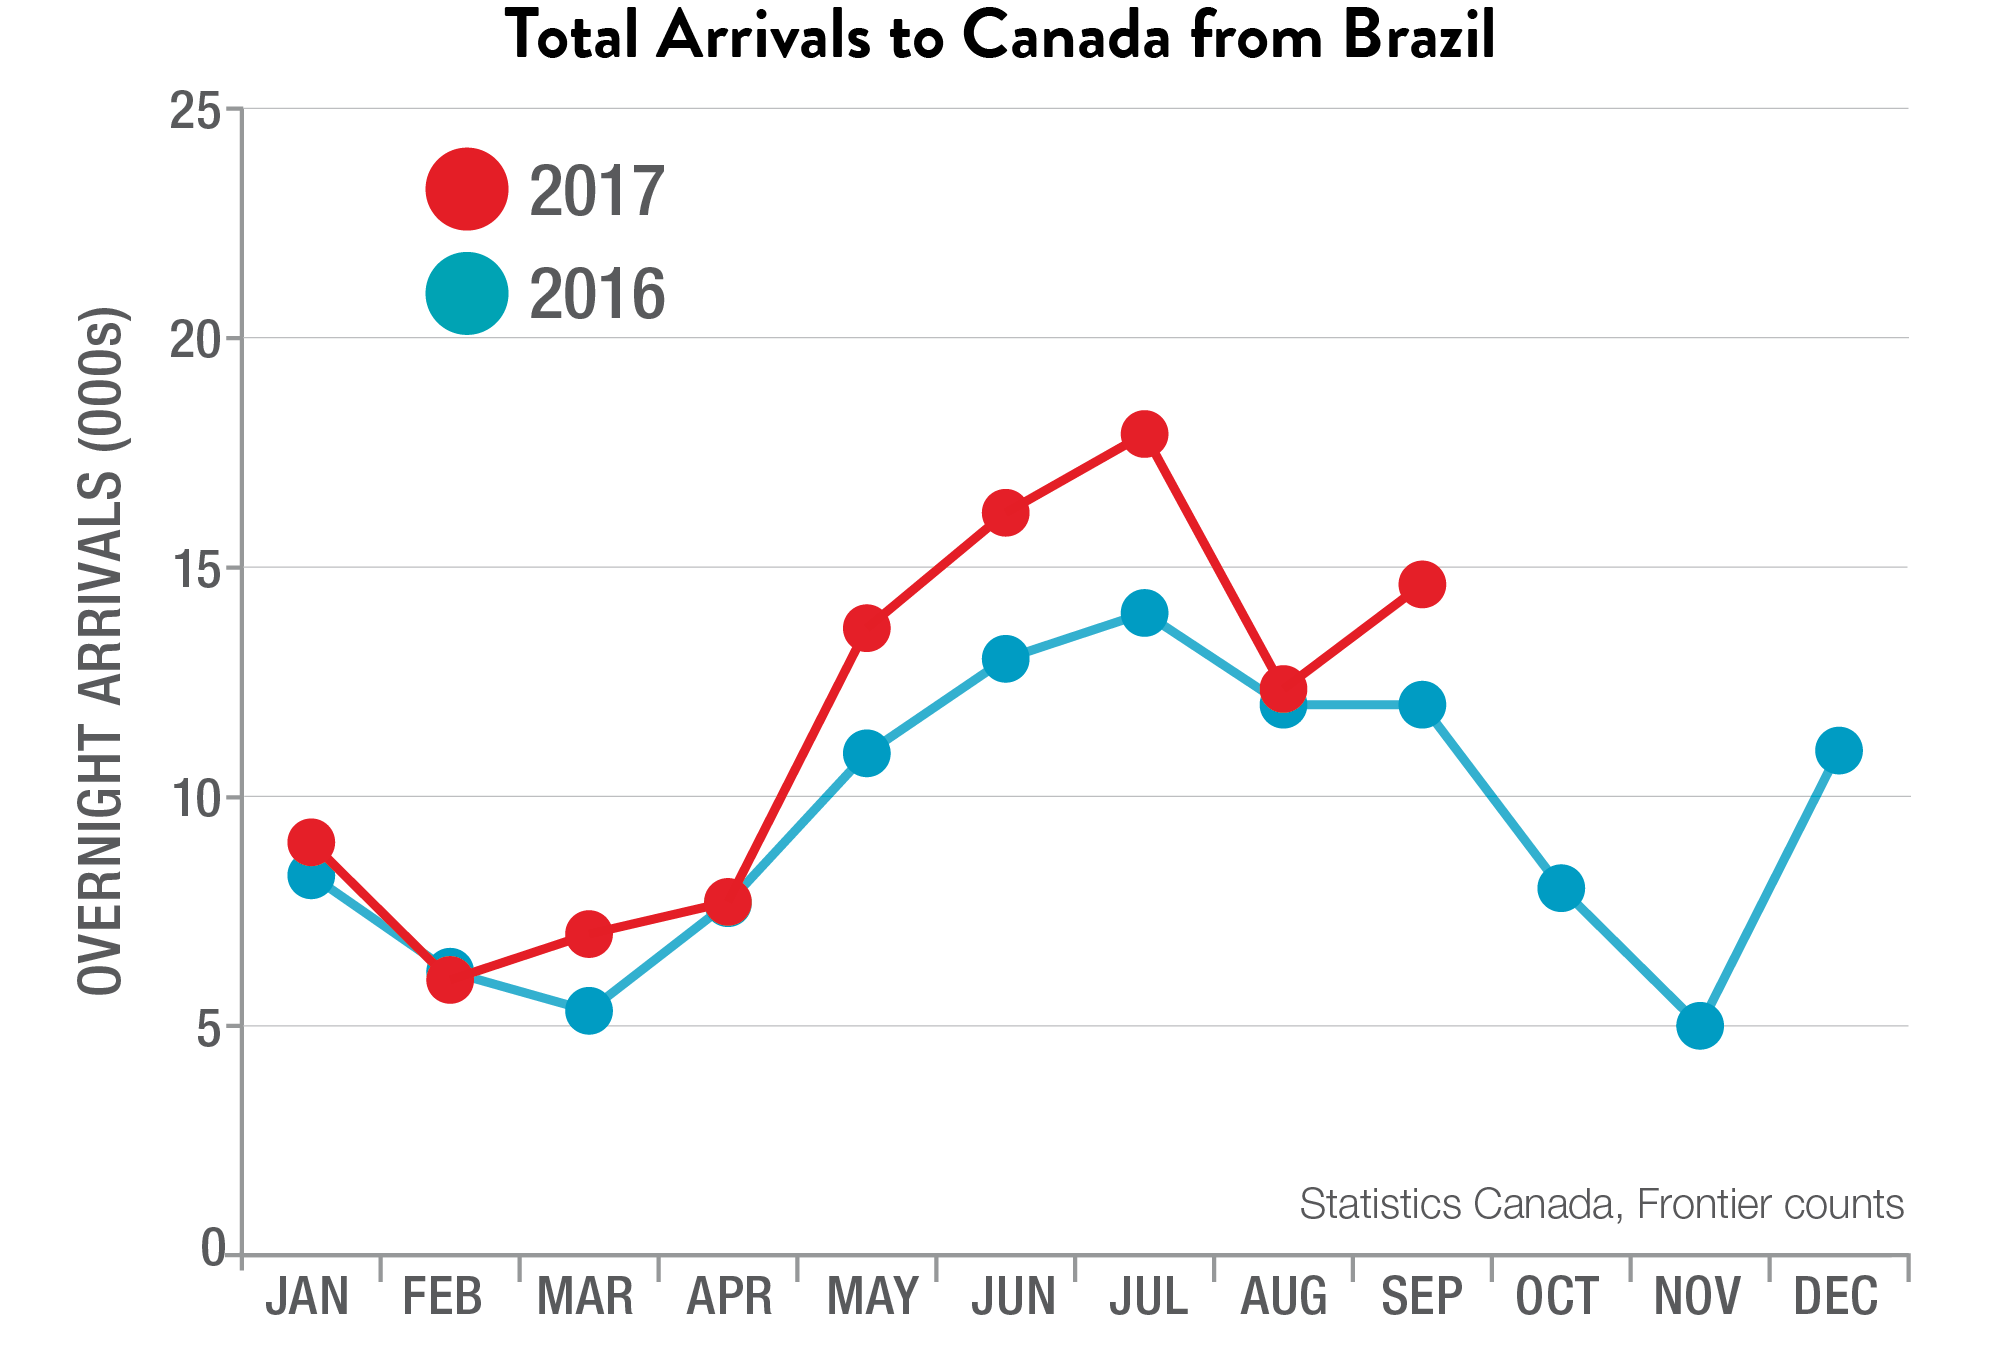 Total Arrivals to Canada from Brazil